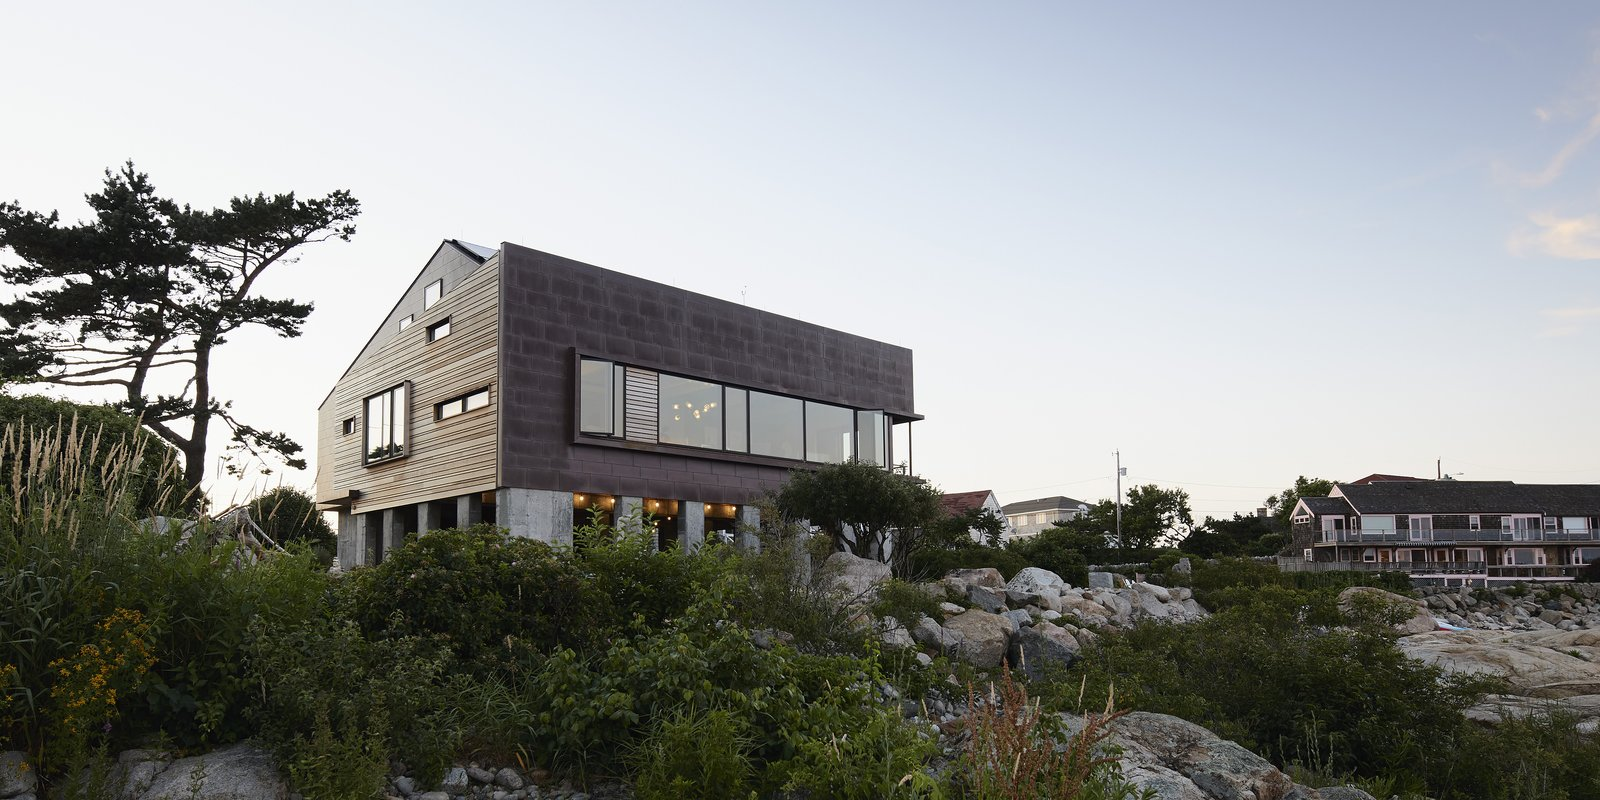 Exterior, Wood Siding Material, Metal Siding Material, and Prefab Building Type - Rockport, Massachusetts Dwell Magazine : November / December 2017  Photo 3 of 10 in Dwell's Top 10 Prefabs of 2017 from On the Coast of Massachusetts, a Prefab Ranch Is Totally Overhauled for a Wheelchair User